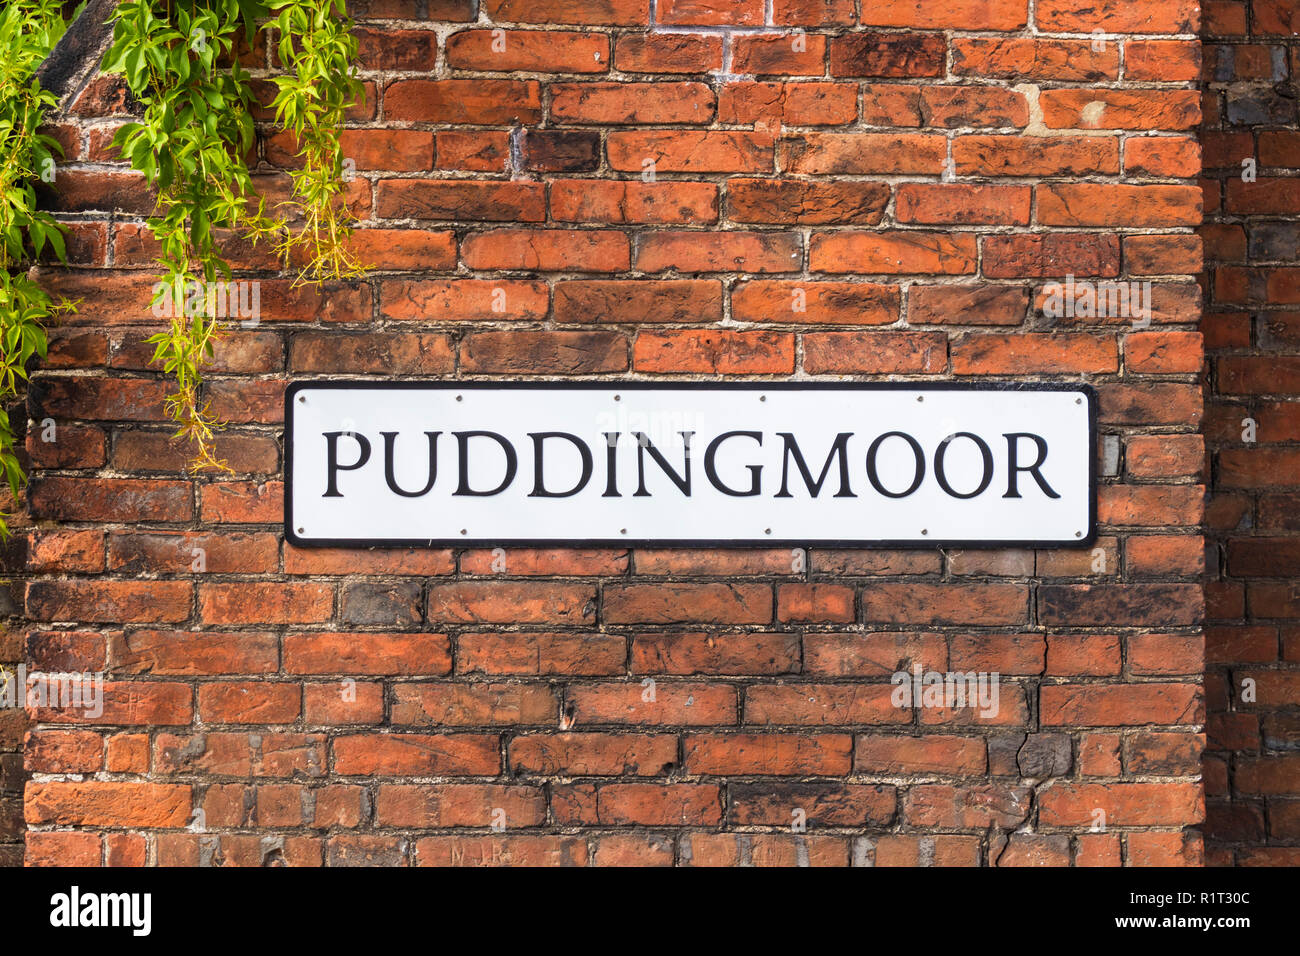 Puddingmoor an unusual road sign road name on a medieval brick wall  Beccles Suffolk England UK Europe - Stock Image